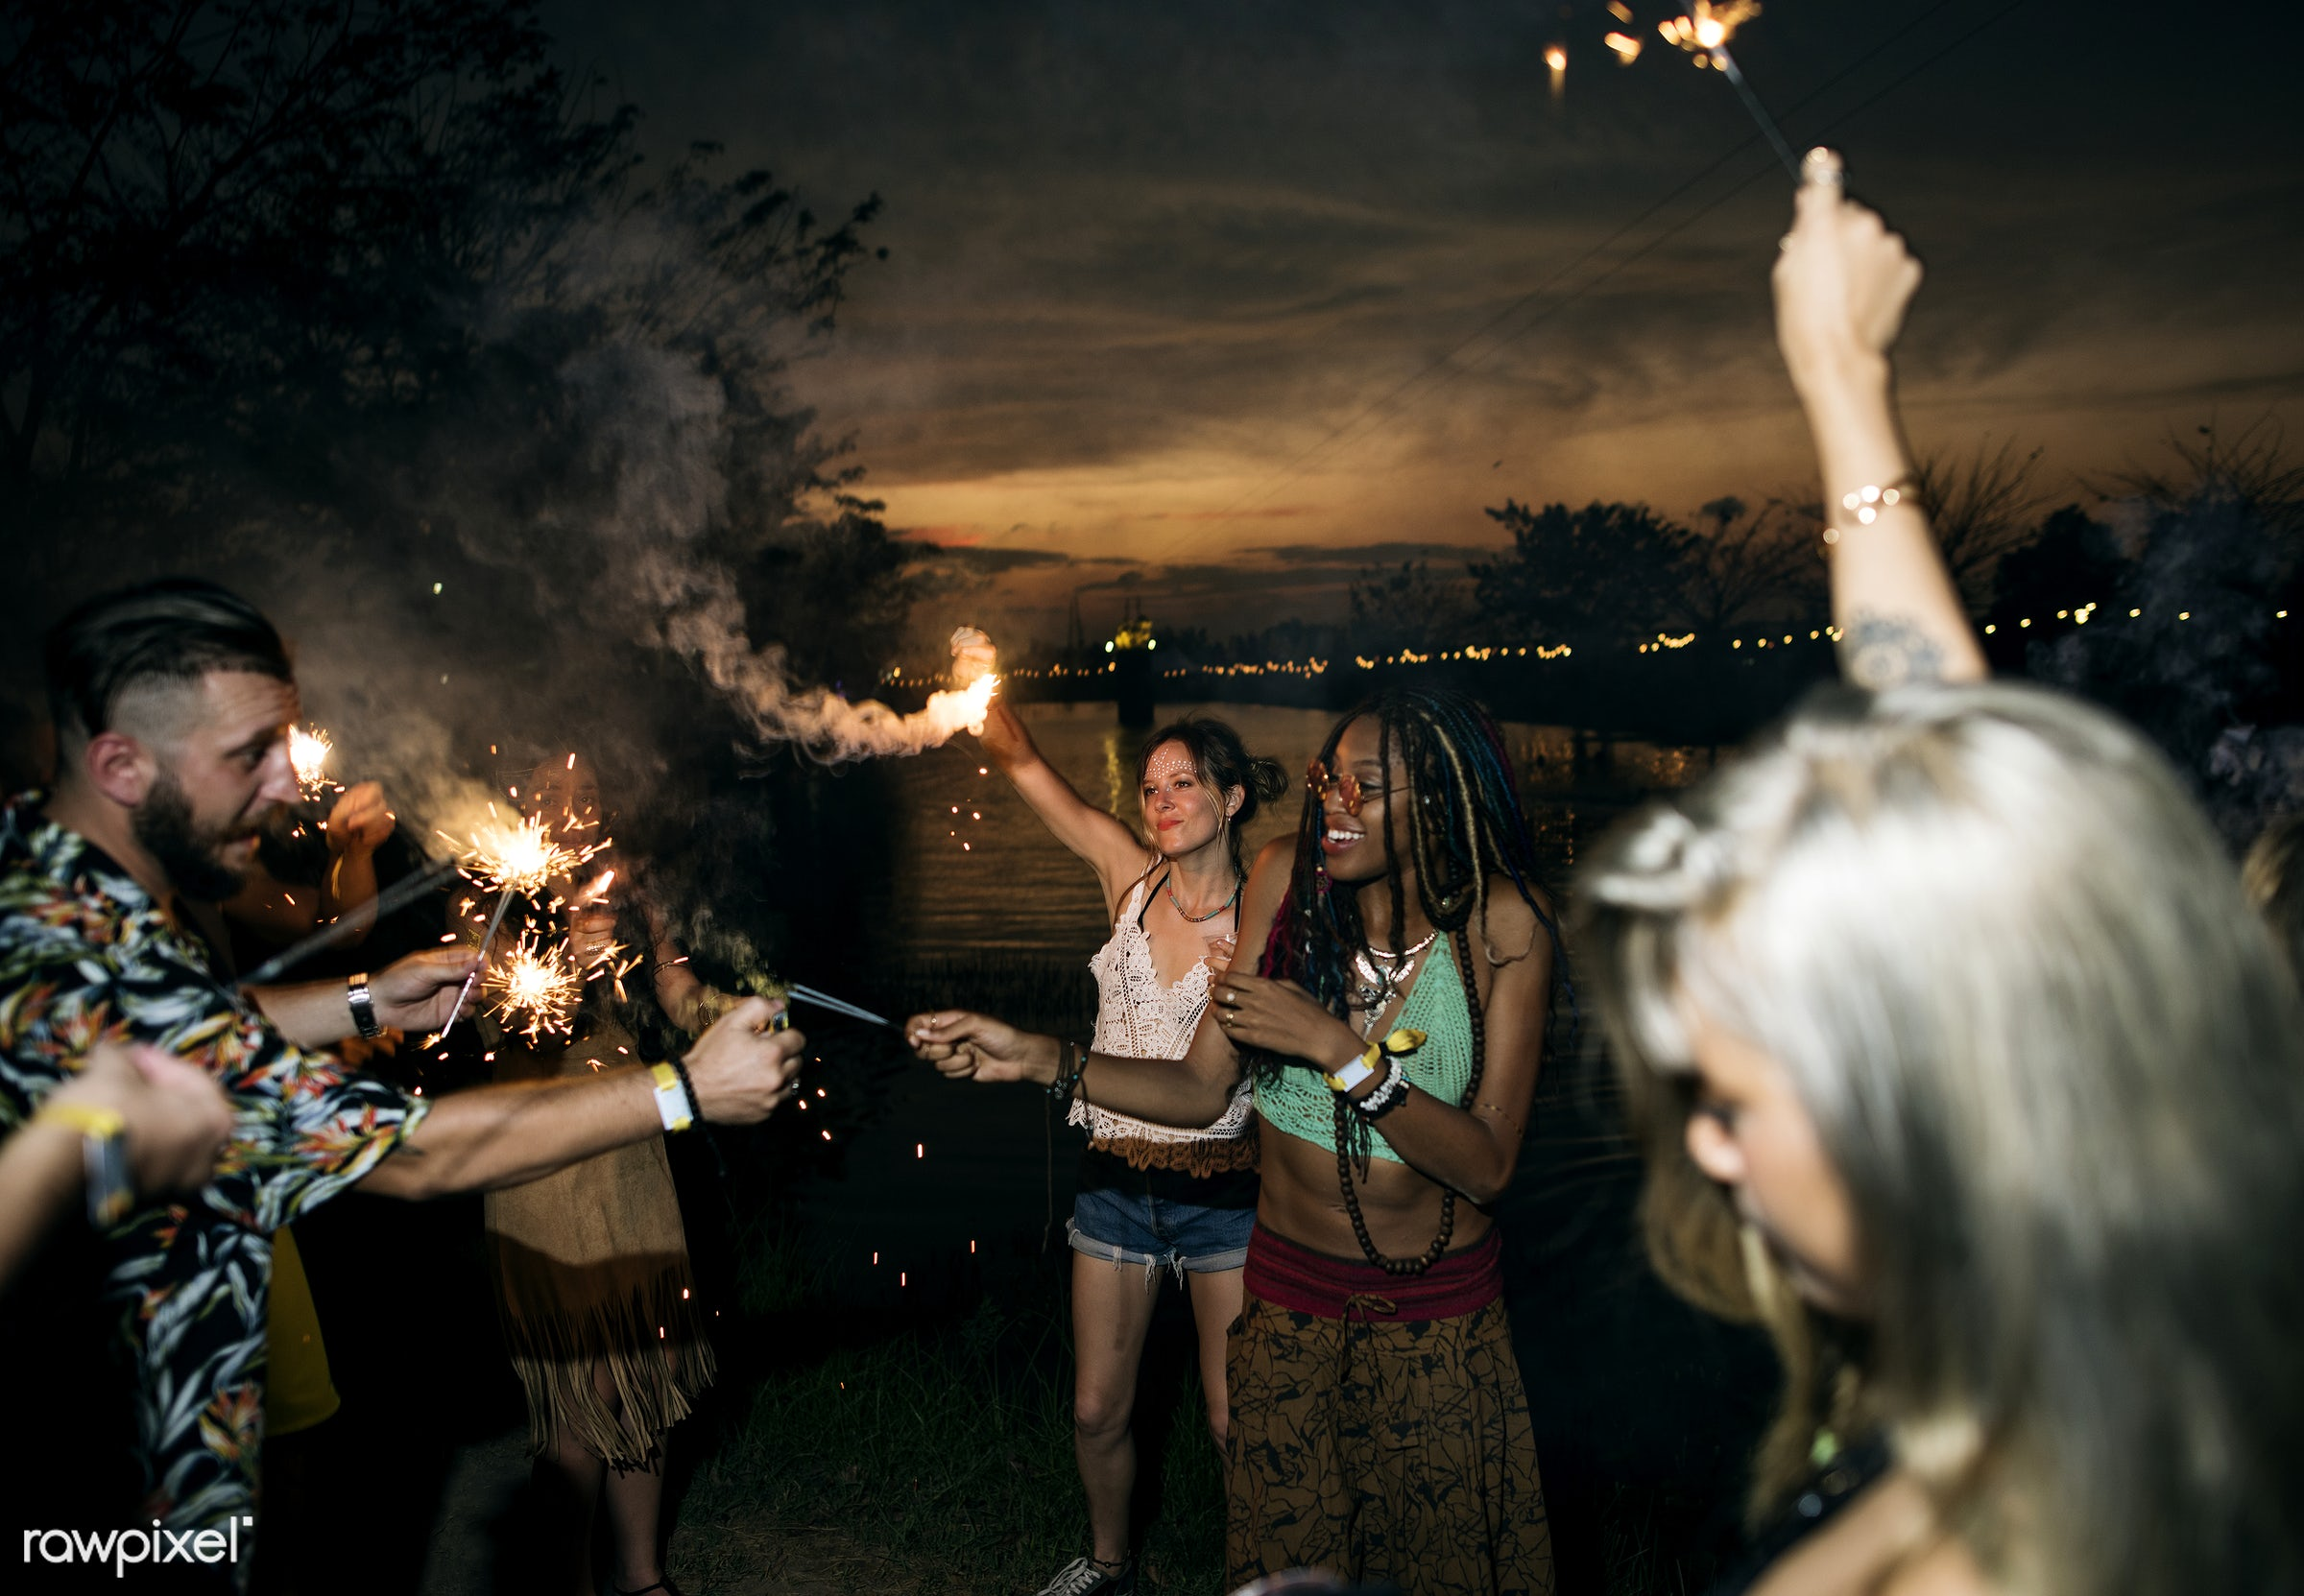 sparkler, activity, adults, carefree, concert, crowd, diversity, enjoying, enjoyment, entertainment, event, festival,...